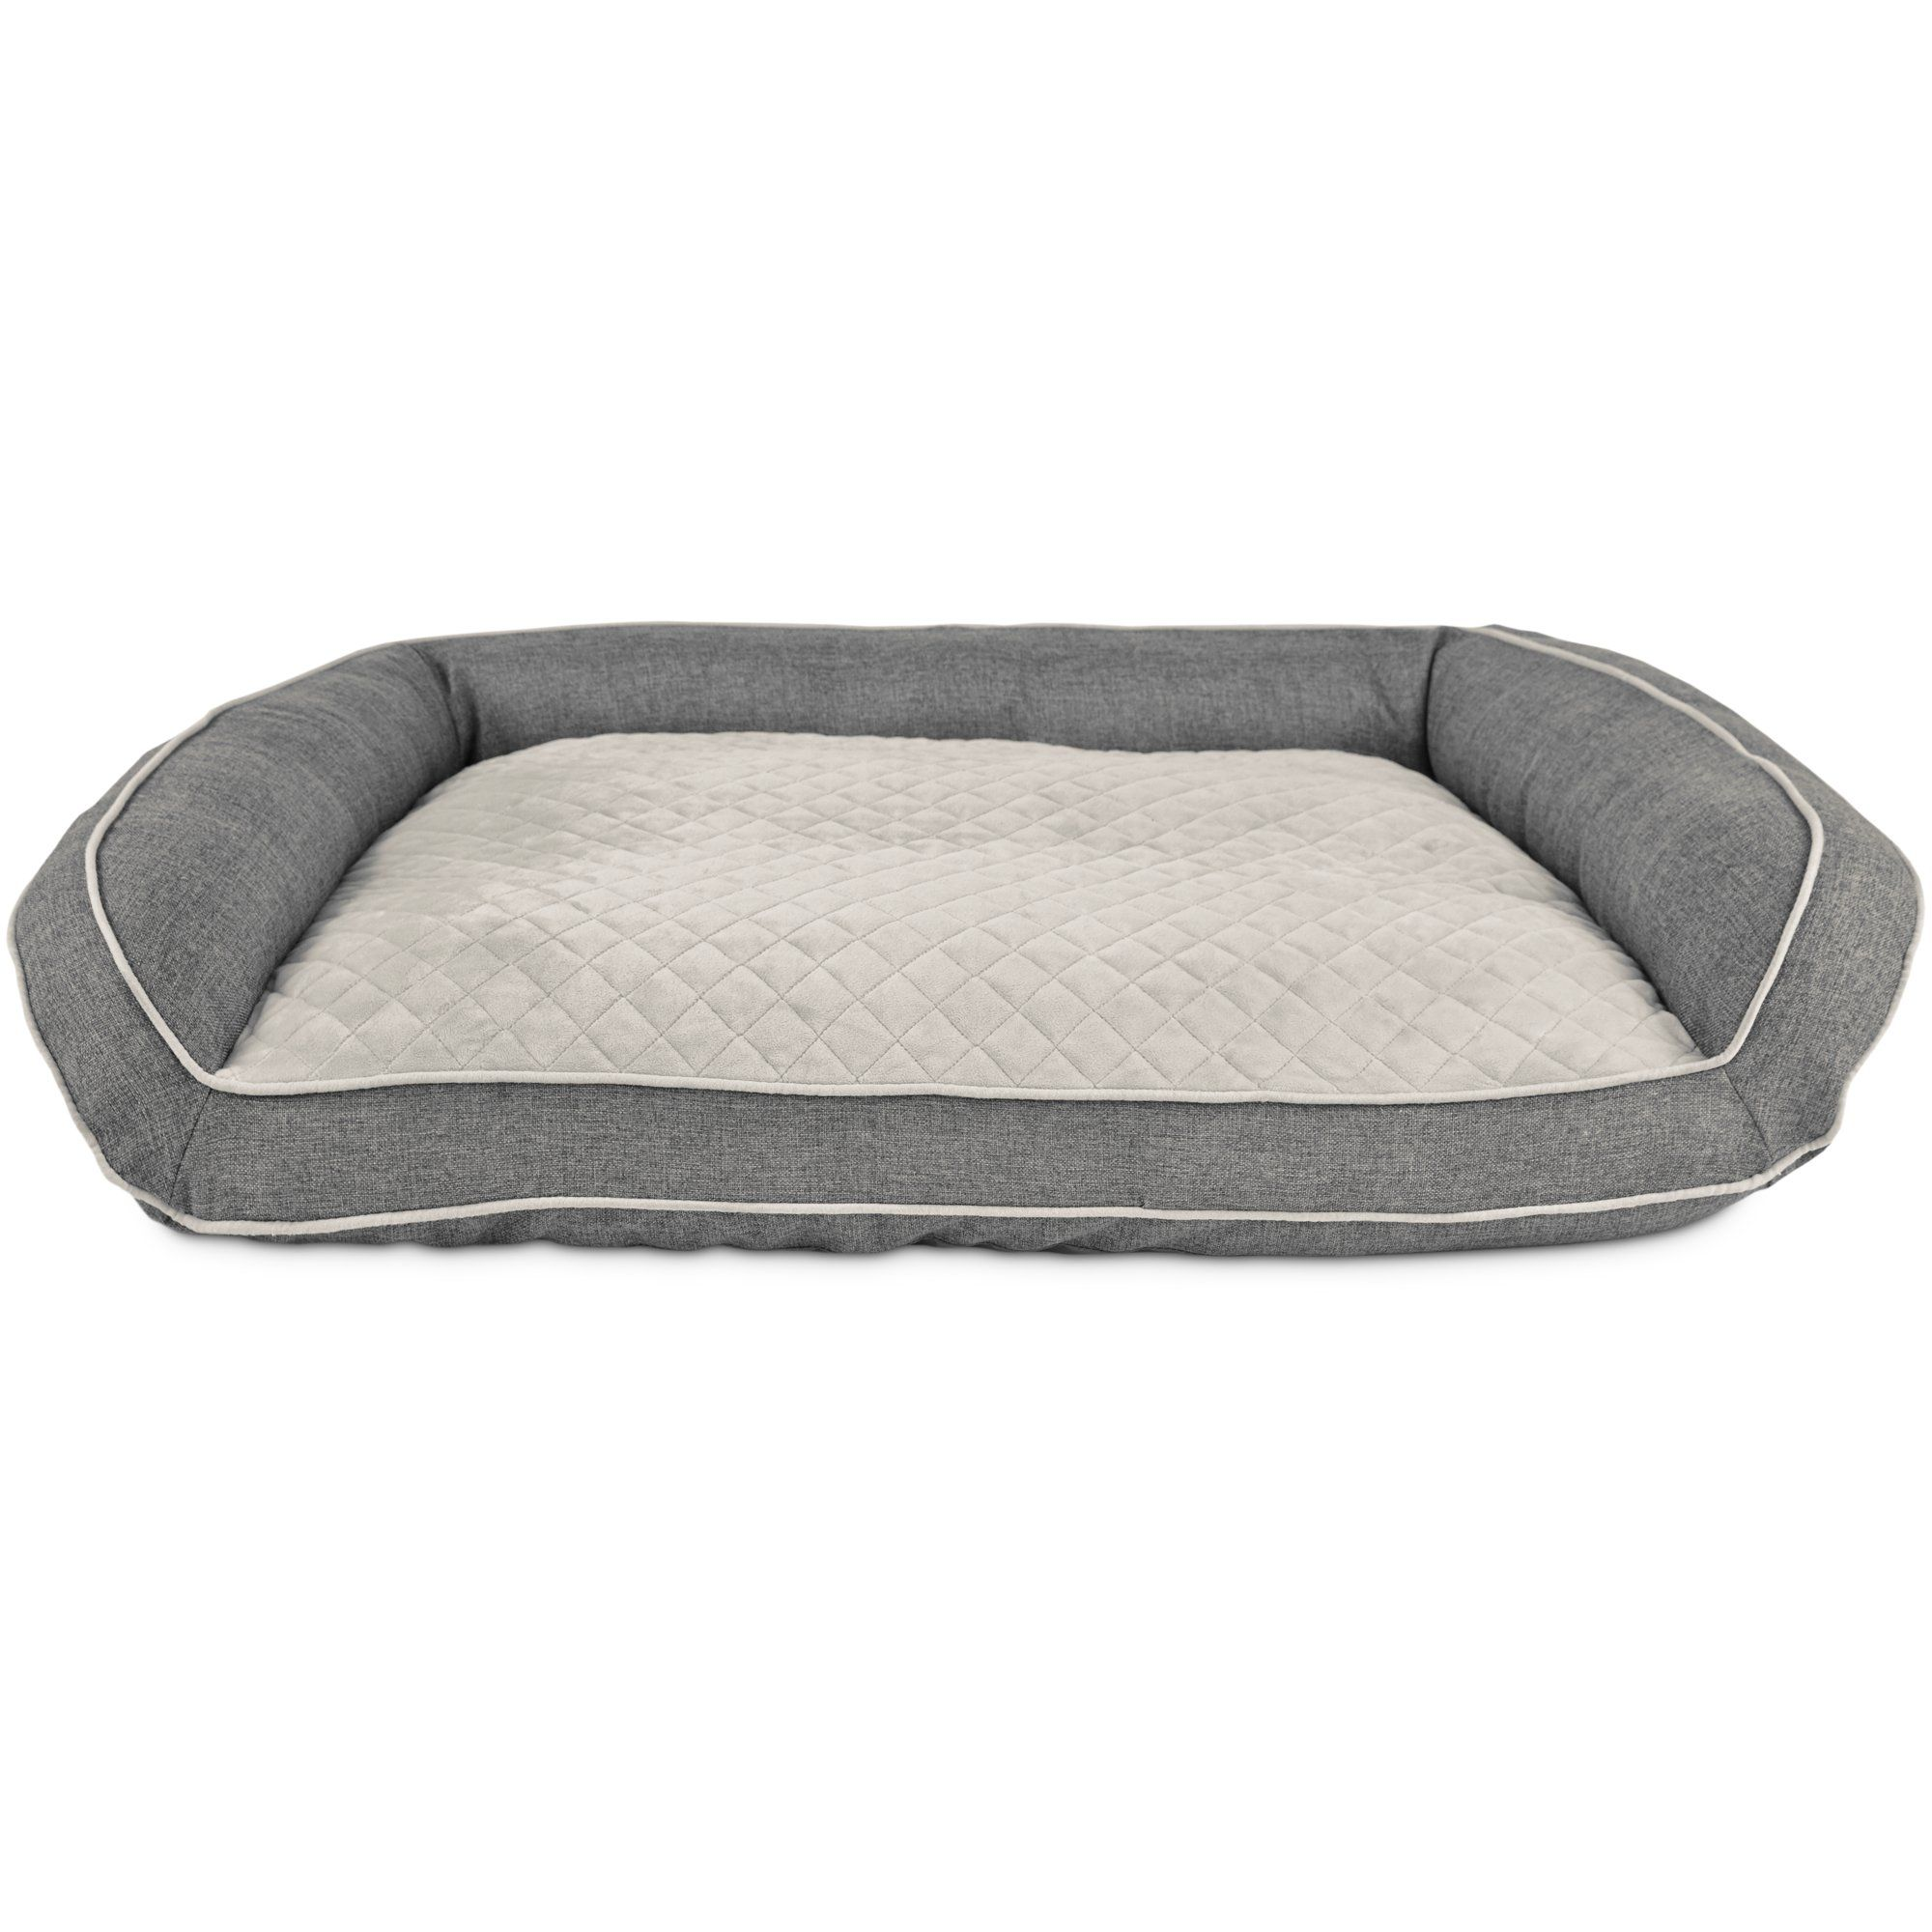 preferred sale raised sunshiny bolster dog large orthopedic petco beds multipurpose bed linen peaceful couches foam bedding then price also as cheapest genpets rc piquant memory wooden smart sided wells